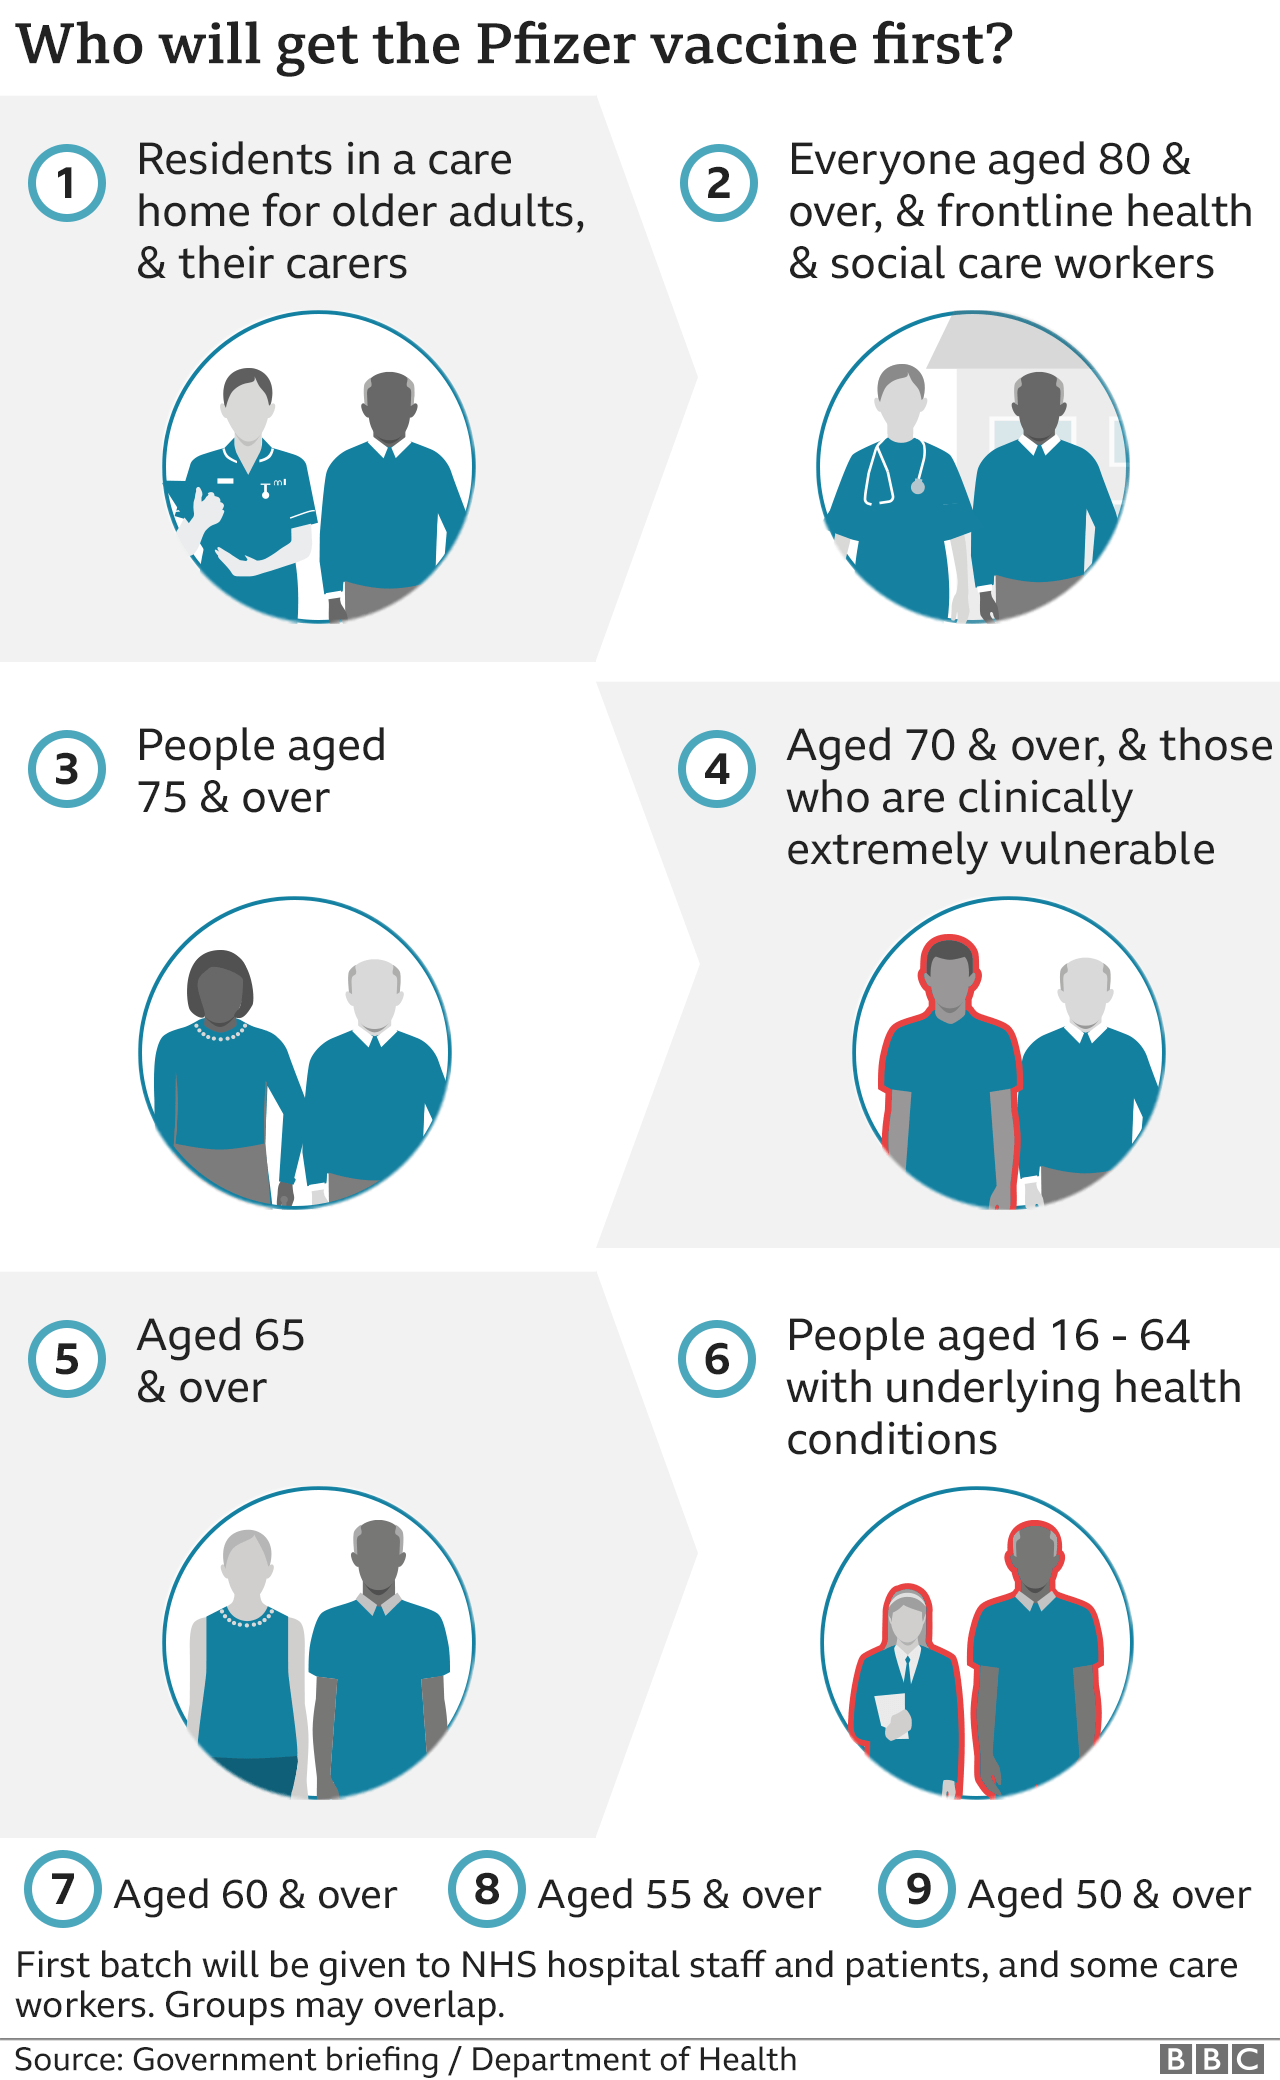 Graphic outlining how the Pfizer vaccine will be prioritised among different groups. The Joint Committee on Vaccination and Immunisation (JCVI) has advised that people are given the vaccine in the following order, although there is likely to be some overlap between groups: 1. residents in a care home for older adults, and their carers 2. everyone aged 80 and over, and frontline health and social care workers 3. everyone aged 75 and over 4. everyone aged 70 and over, and those who are clinically extremely vulnerable 5. everyone aged 65 and over 6. people aged 16 to 64 with underlying health conditions which put them at higher risk of serious disease and death from Covid-19 7. everyone aged 60 and over 8. everyone aged 55 and over 9. everyone aged 50 and over